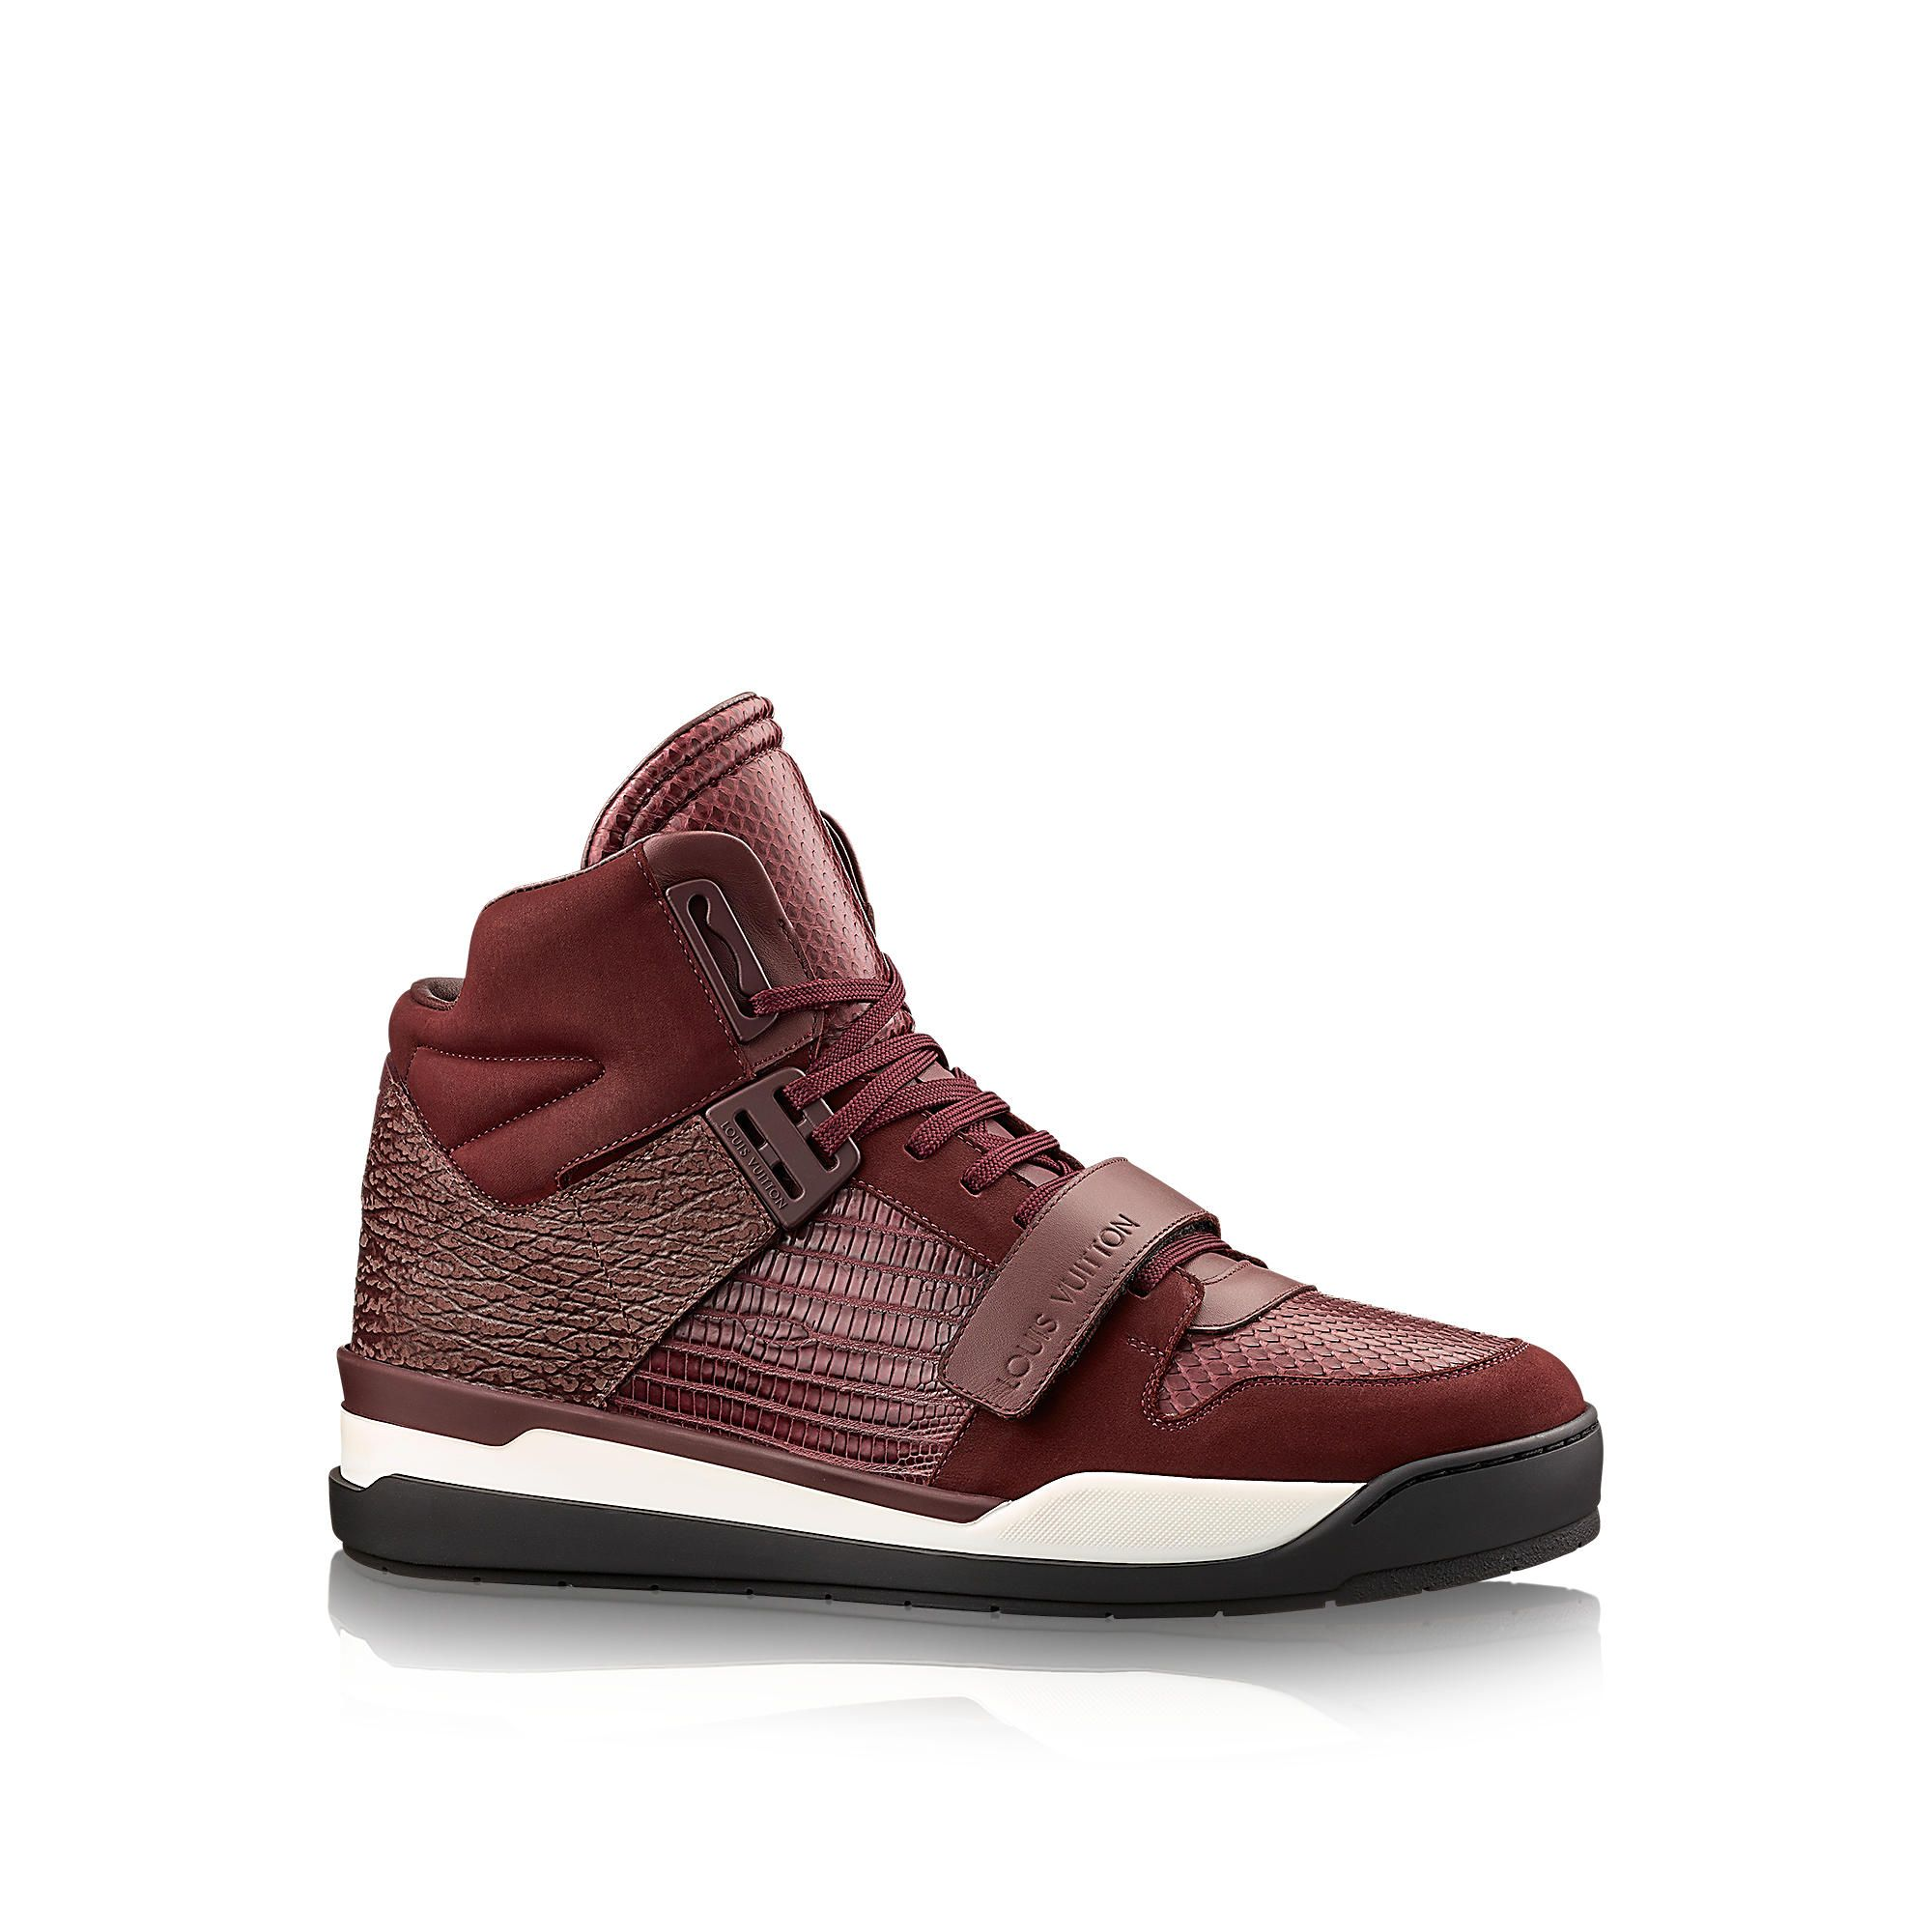 f7f56ac4913d Discover Louis Vuitton Trailblazer sneaker boot via Louis Vuitton ...